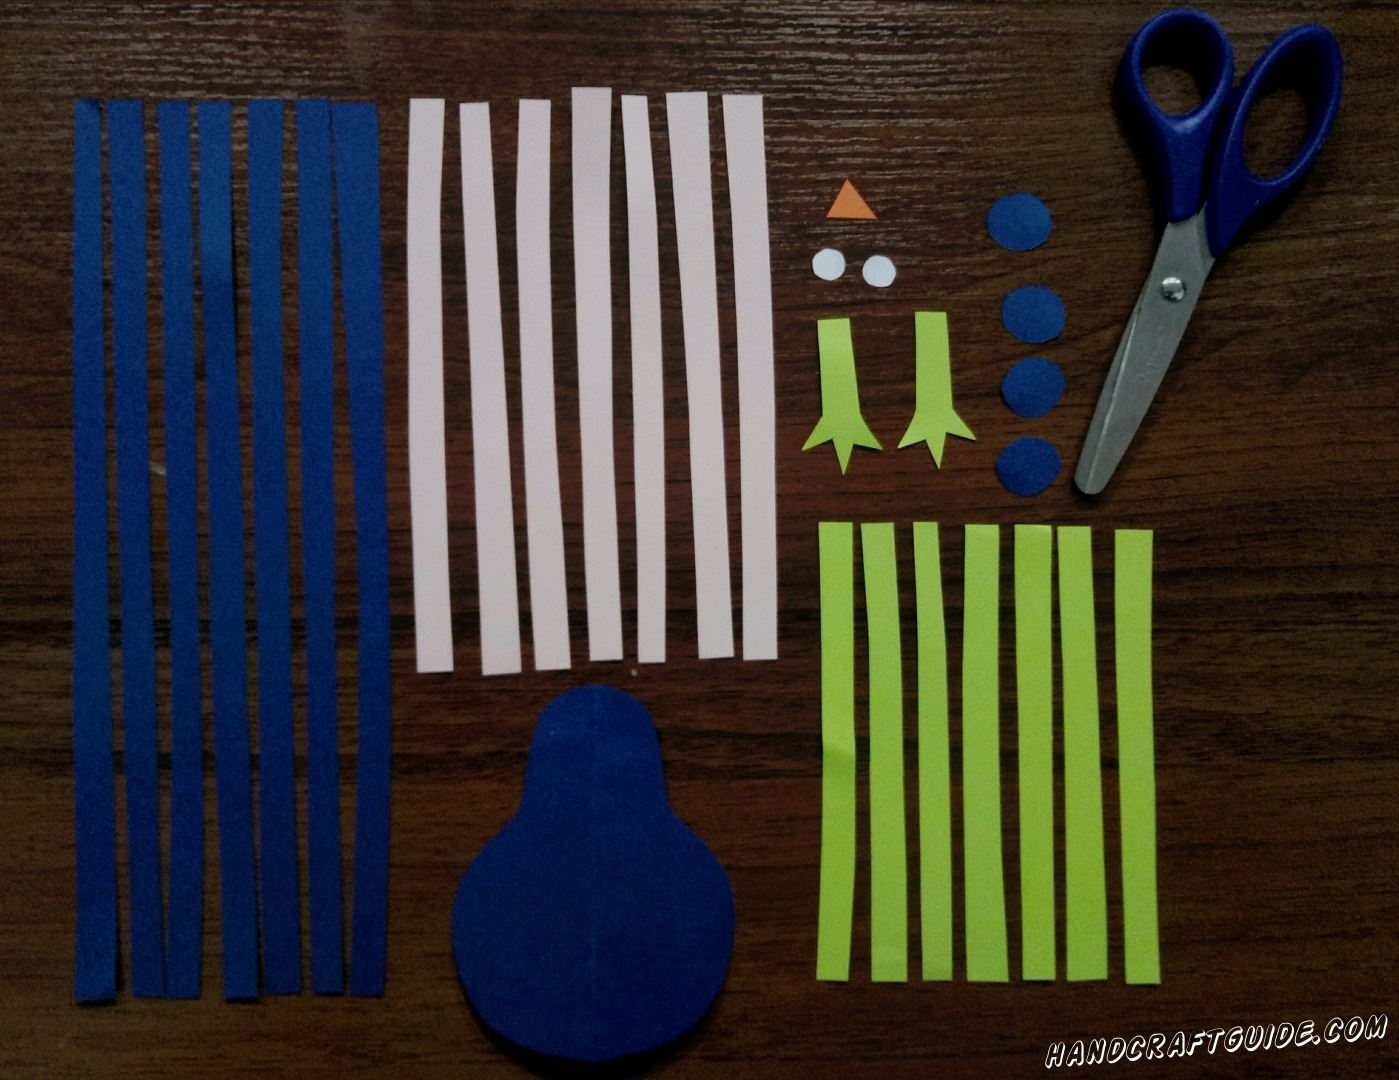 First, we need to cut a blue detail similar to number 8, but without the holes inside. Cut out seven long blue stripes and to finish with this color, cut out 4 small circles.  Next take pink paper and cut out 7 stripes a little shorter than the blue ones. To finish our preparations make 7 short green stripes, 2 paws, 2 white little circles and a very small orange triangle.